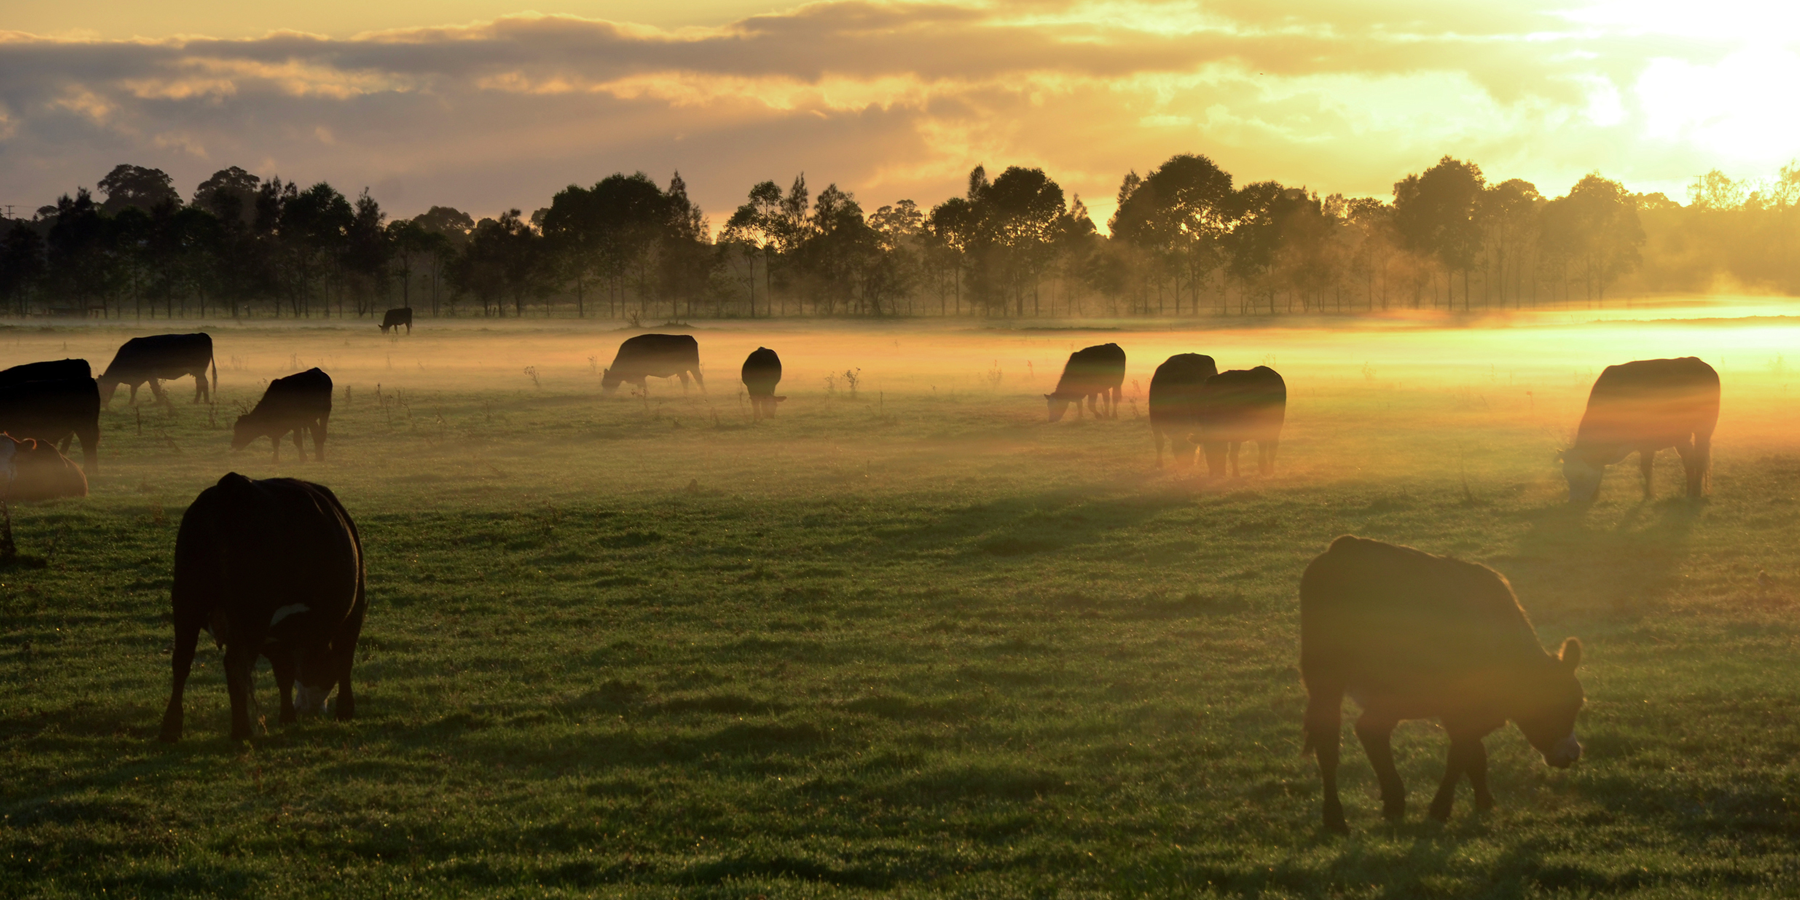 Controlling Cattle Microbiomes for Fewer Greenhouse Emissions